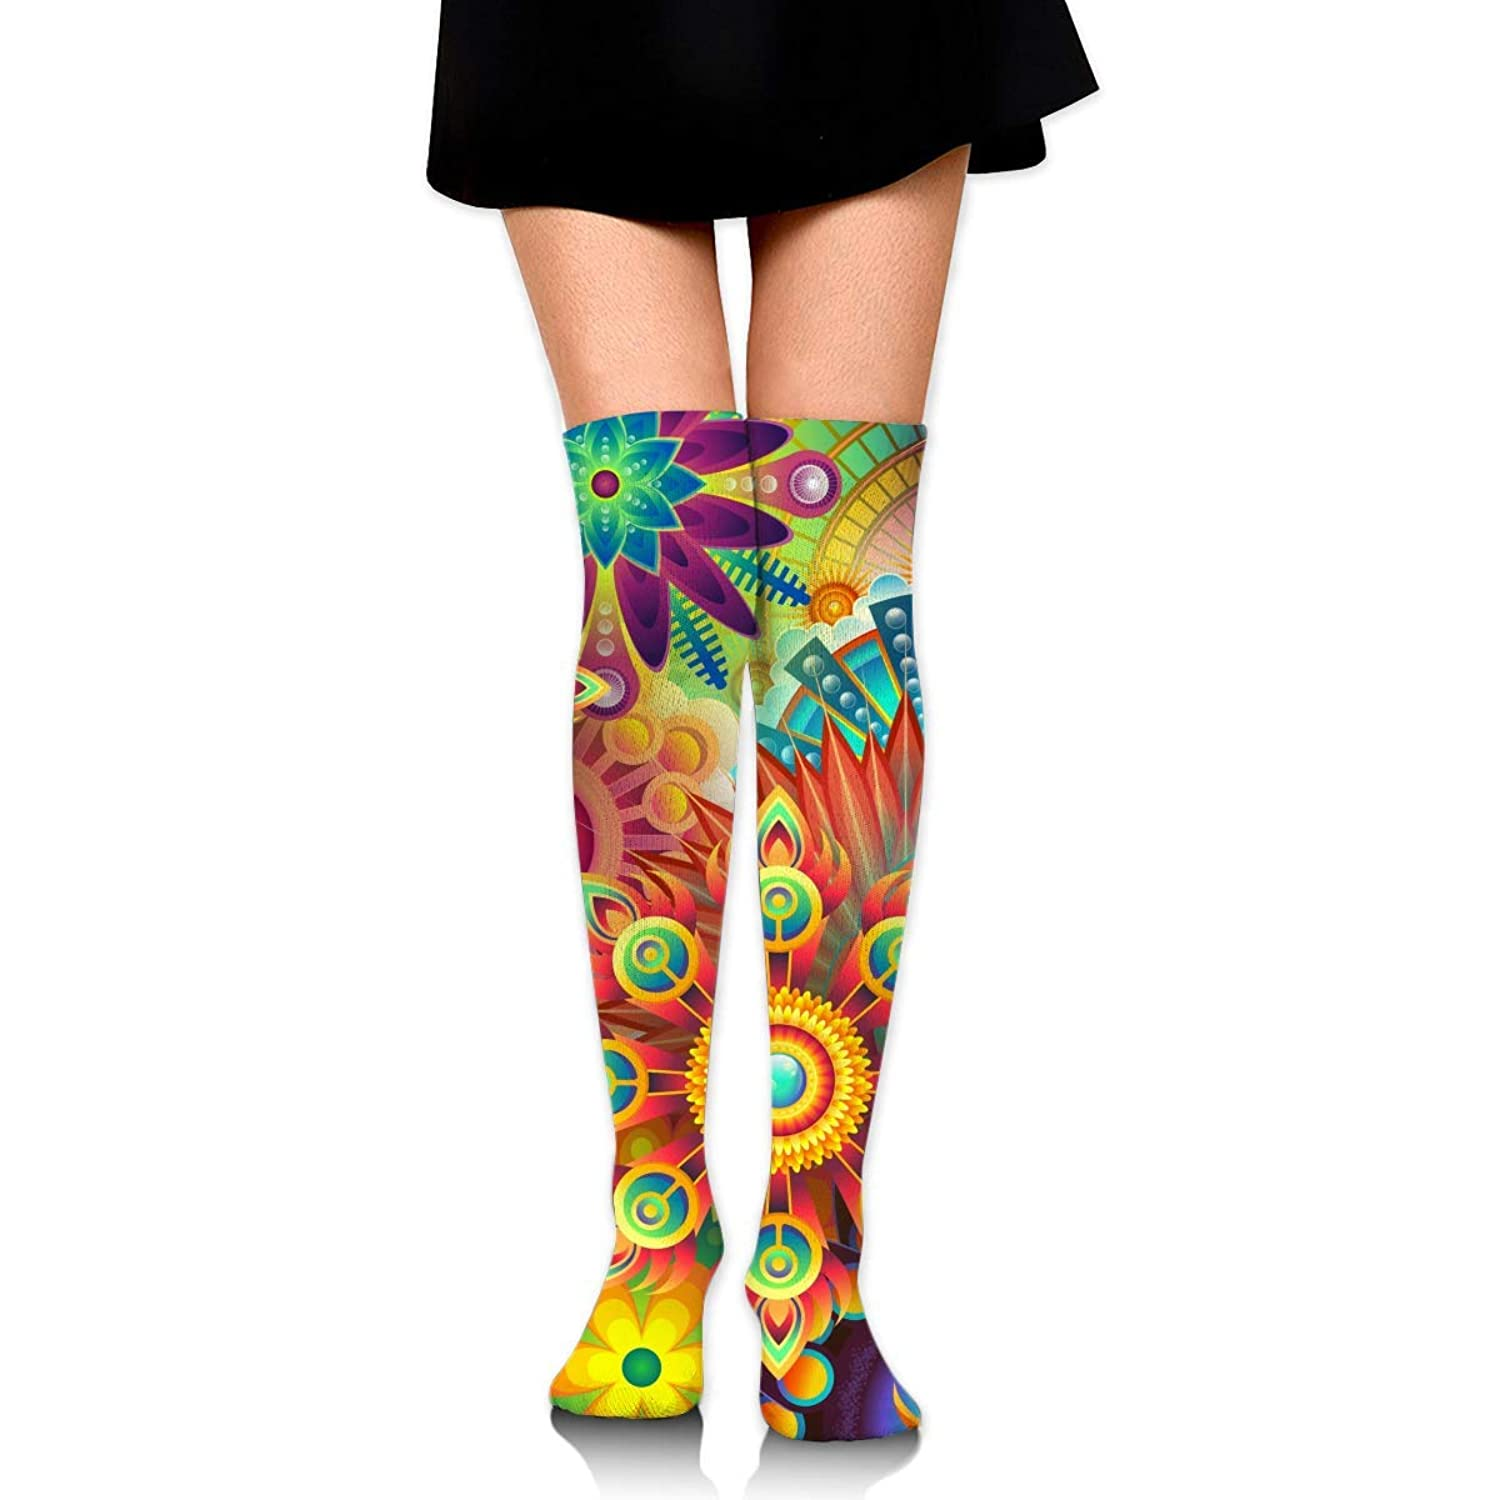 MKLOS 通気性 圧縮ソックス Breathable Knee High Leg Warmer Psychedelic Trippy Mandala Flower Exotic Psychedelic Print Compression High Tube Thigh Boot Stockings Women Girl